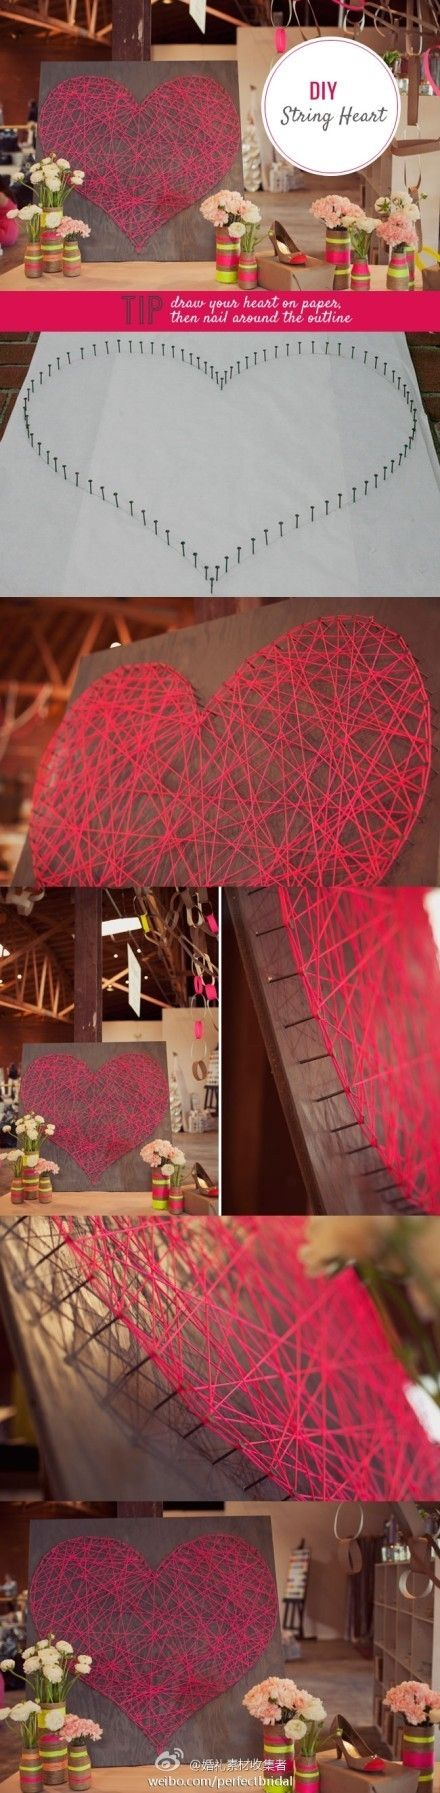 As an added element in the room, I love this DIY string art heart. I'm planning to make this for my daughter's big girl room and I think it would add a nice touch in this space, too. #LOVEisintheair #DesireTrueLove #DiamondCandles